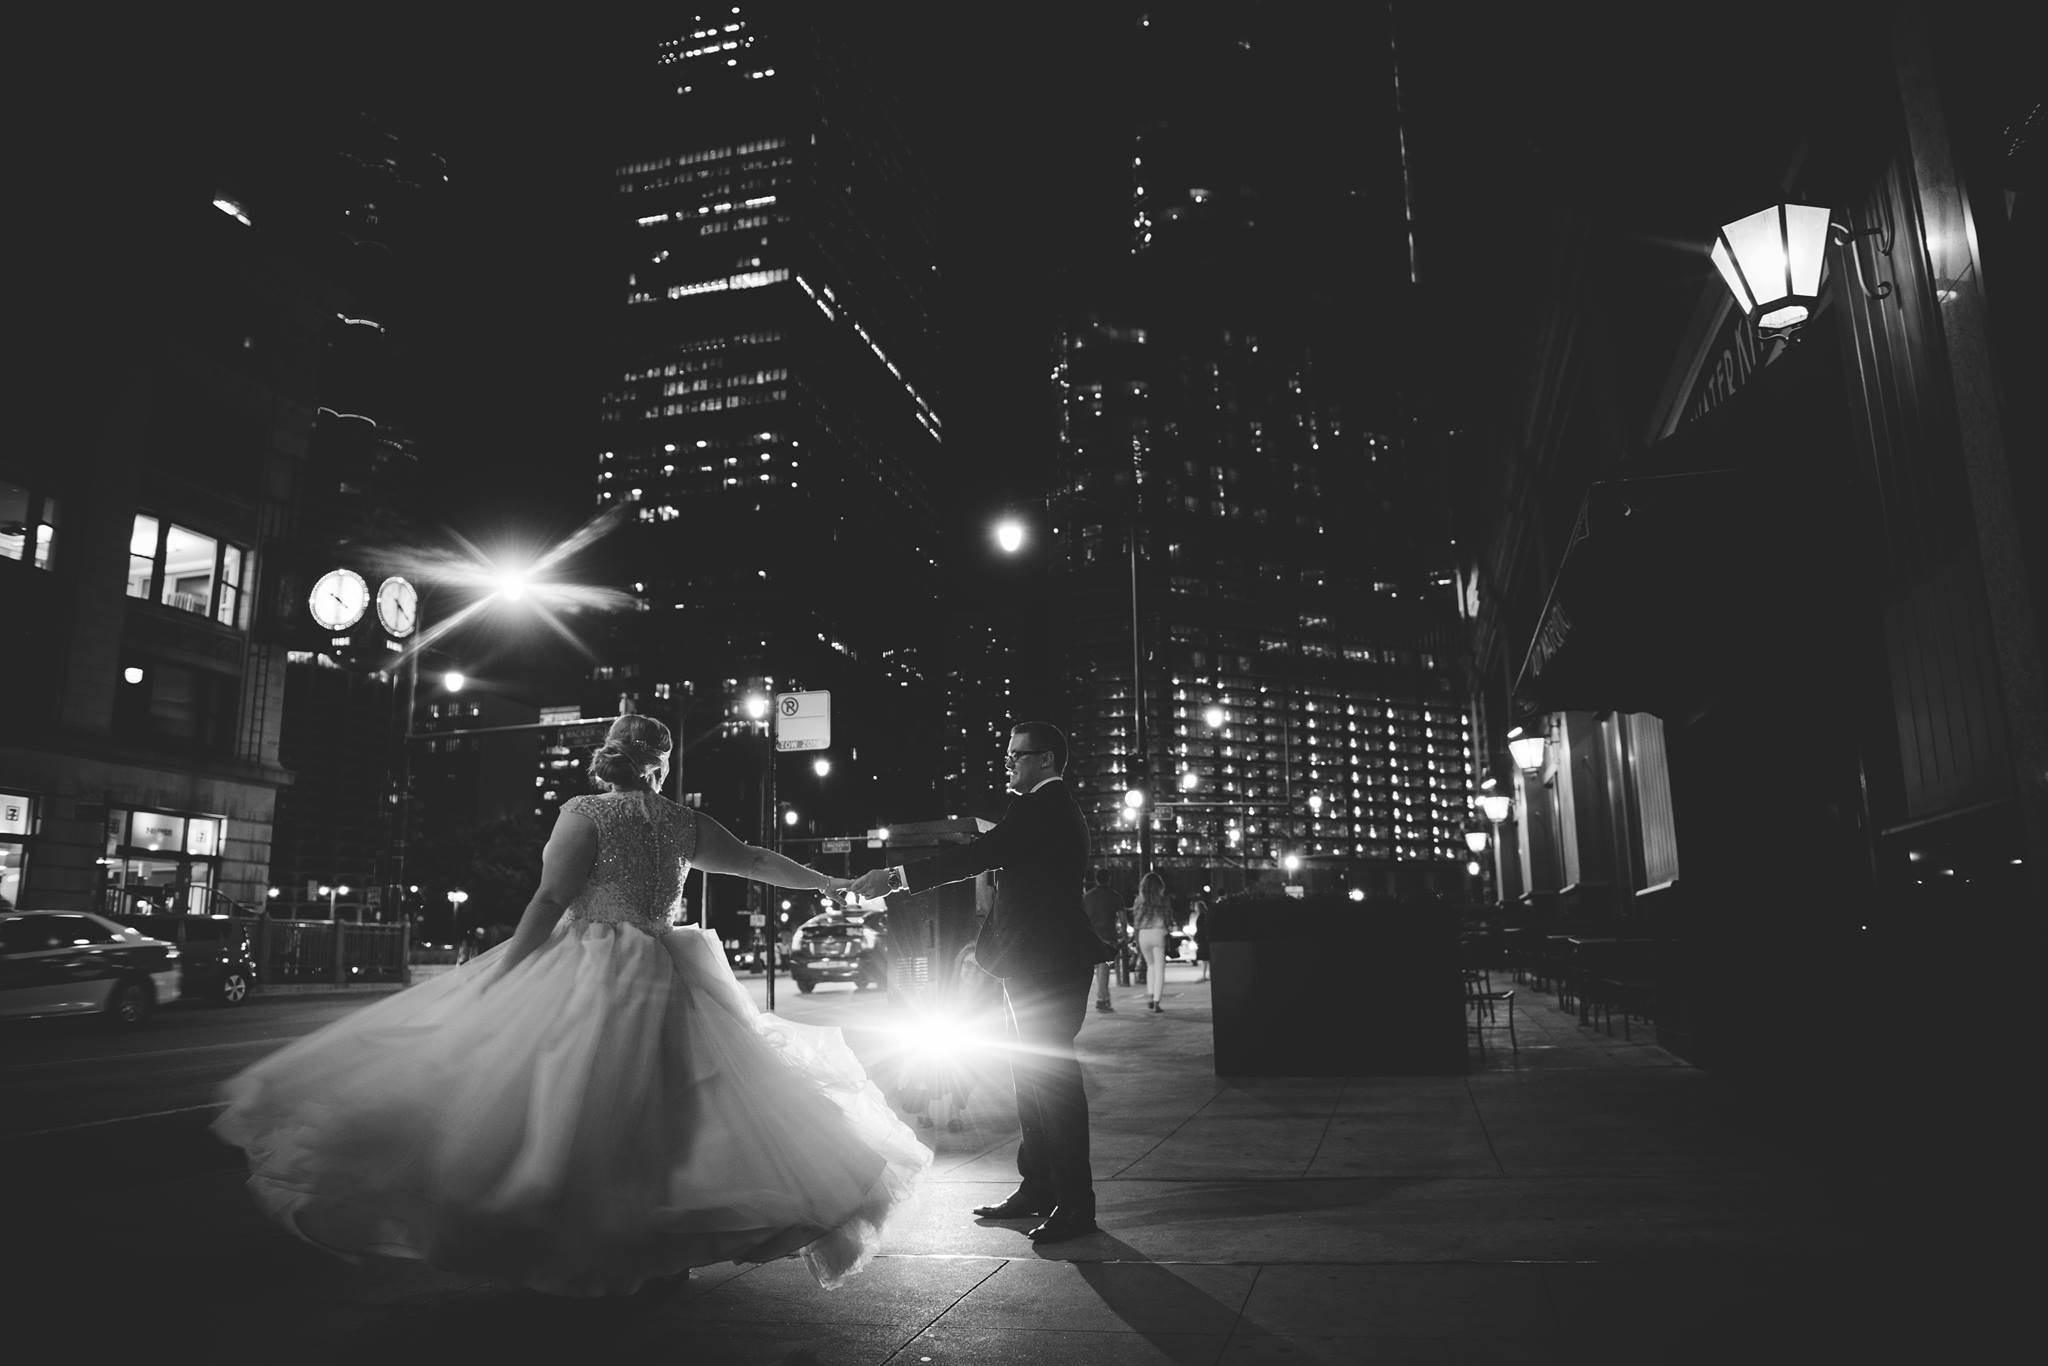 Couple twirling on the streets of Chicago